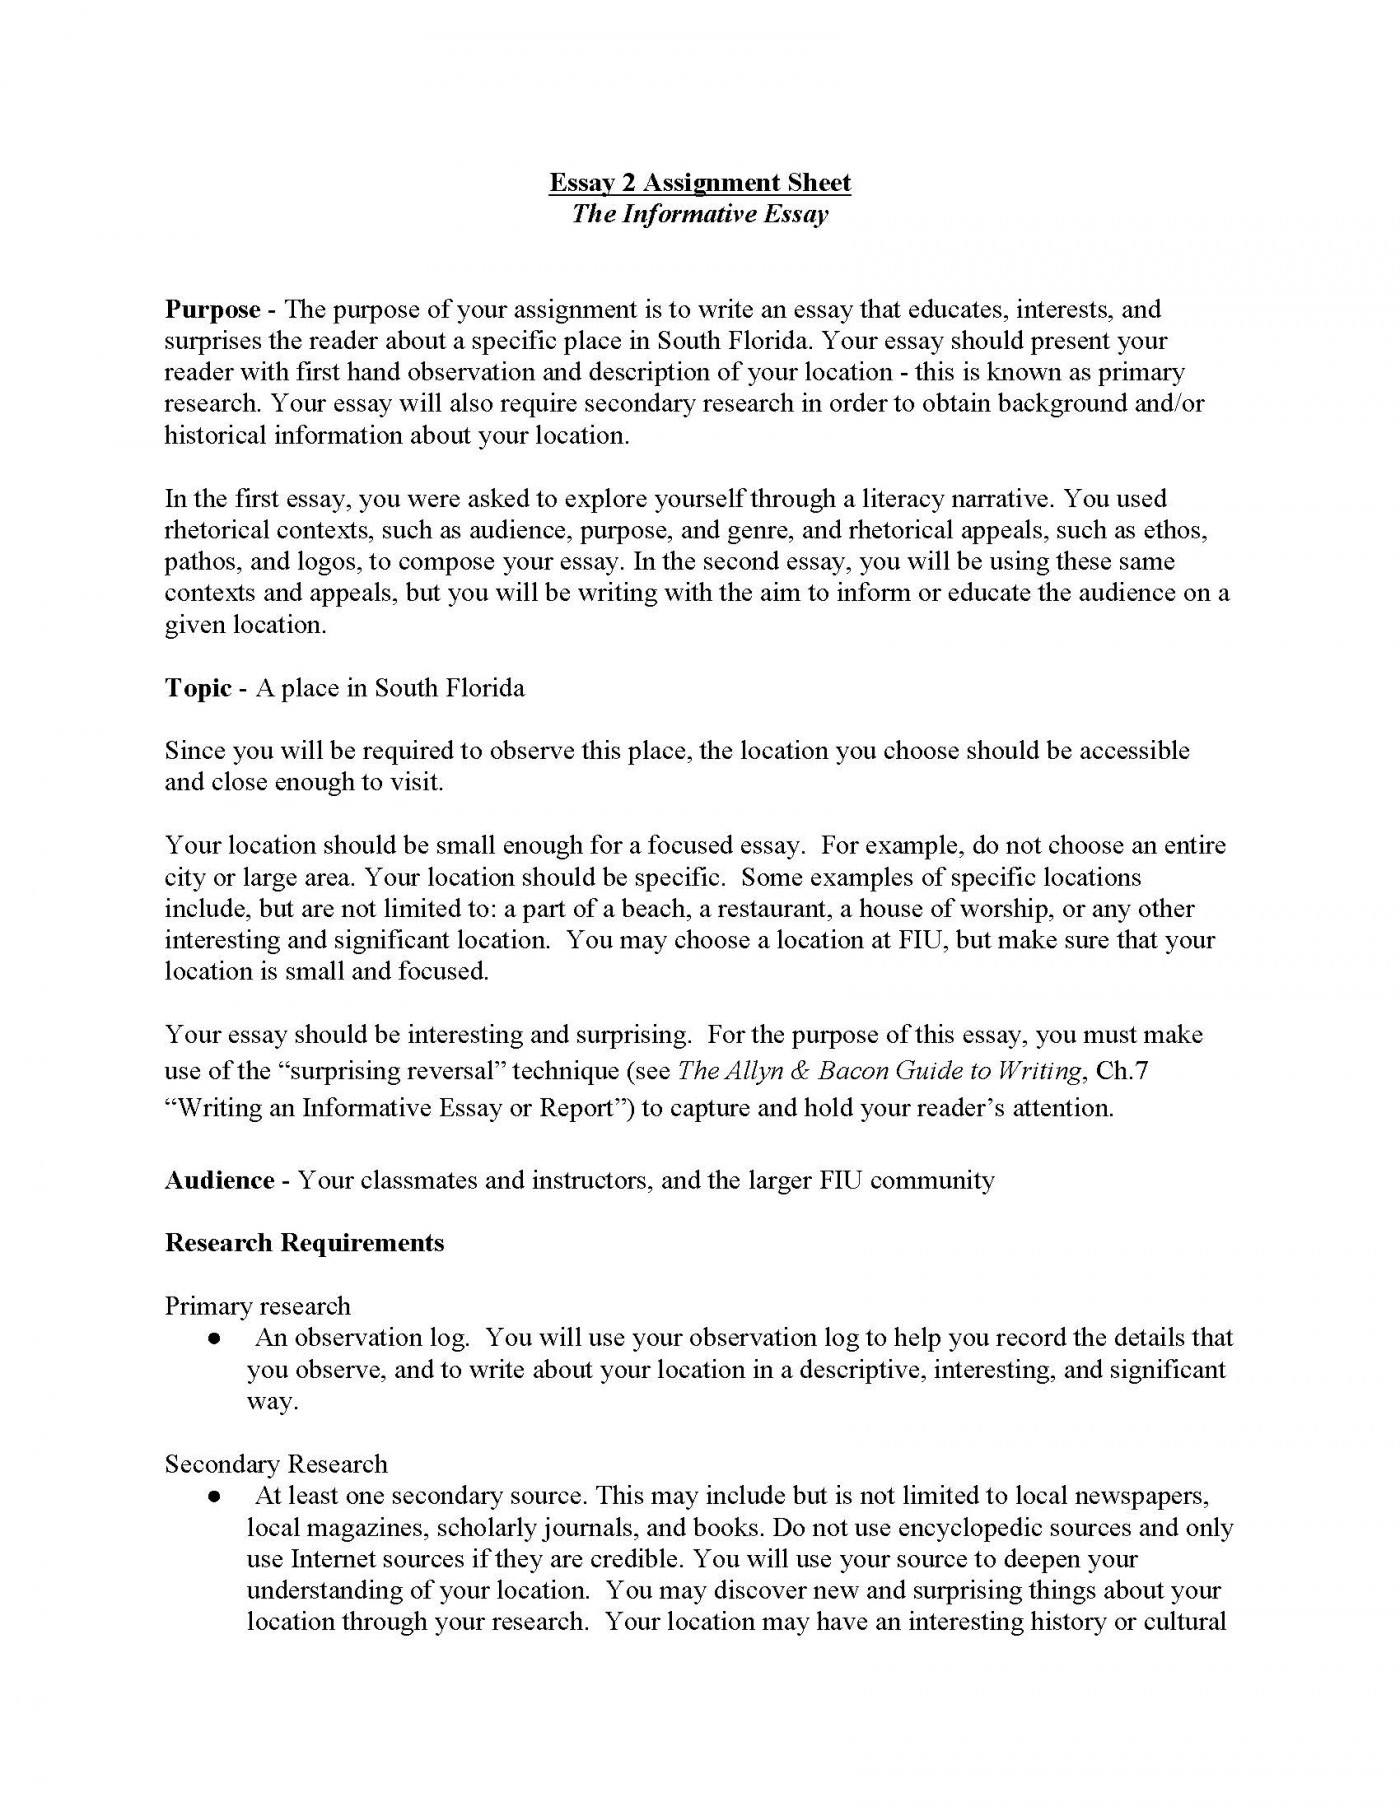 003 Informative Essay Unit Assignment Page 1 Ideas Wondrous Prompts Writing Topics 4th Grade Expository Middle School 1400